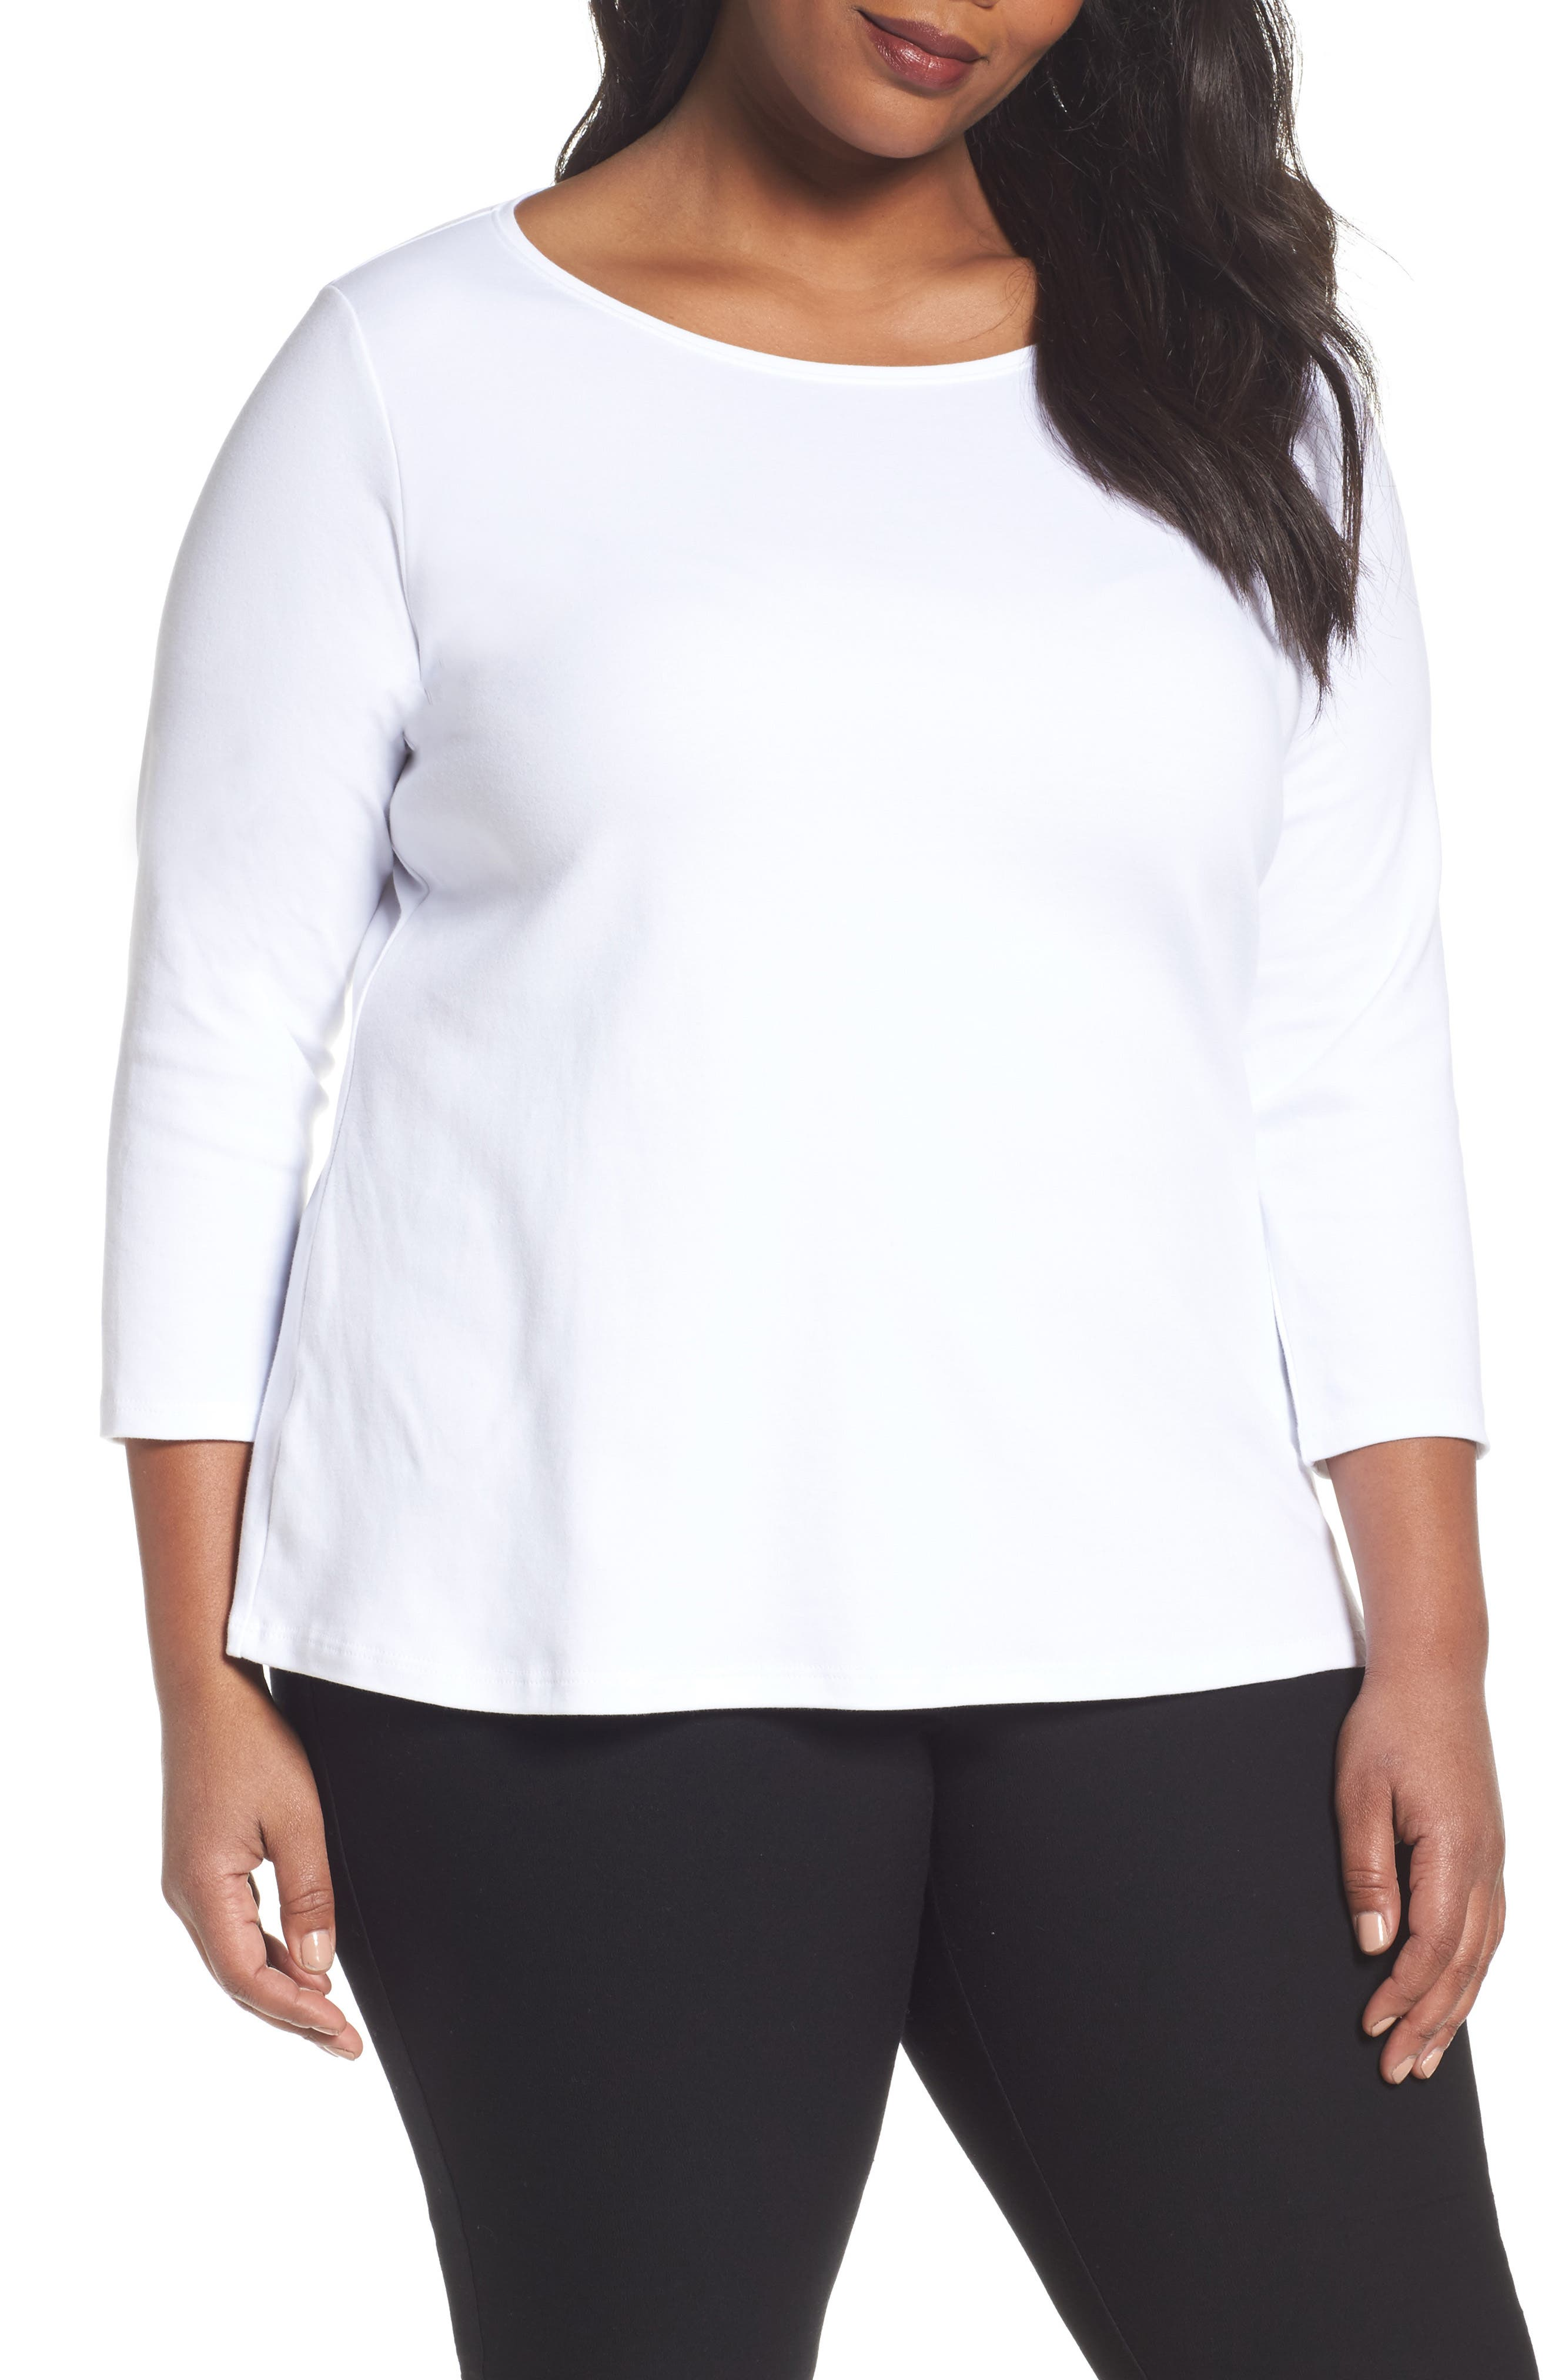 Alternate Image 1 Selected - Eileen Fisher Organic Cotton Ballet Neck Top (Plus Size)